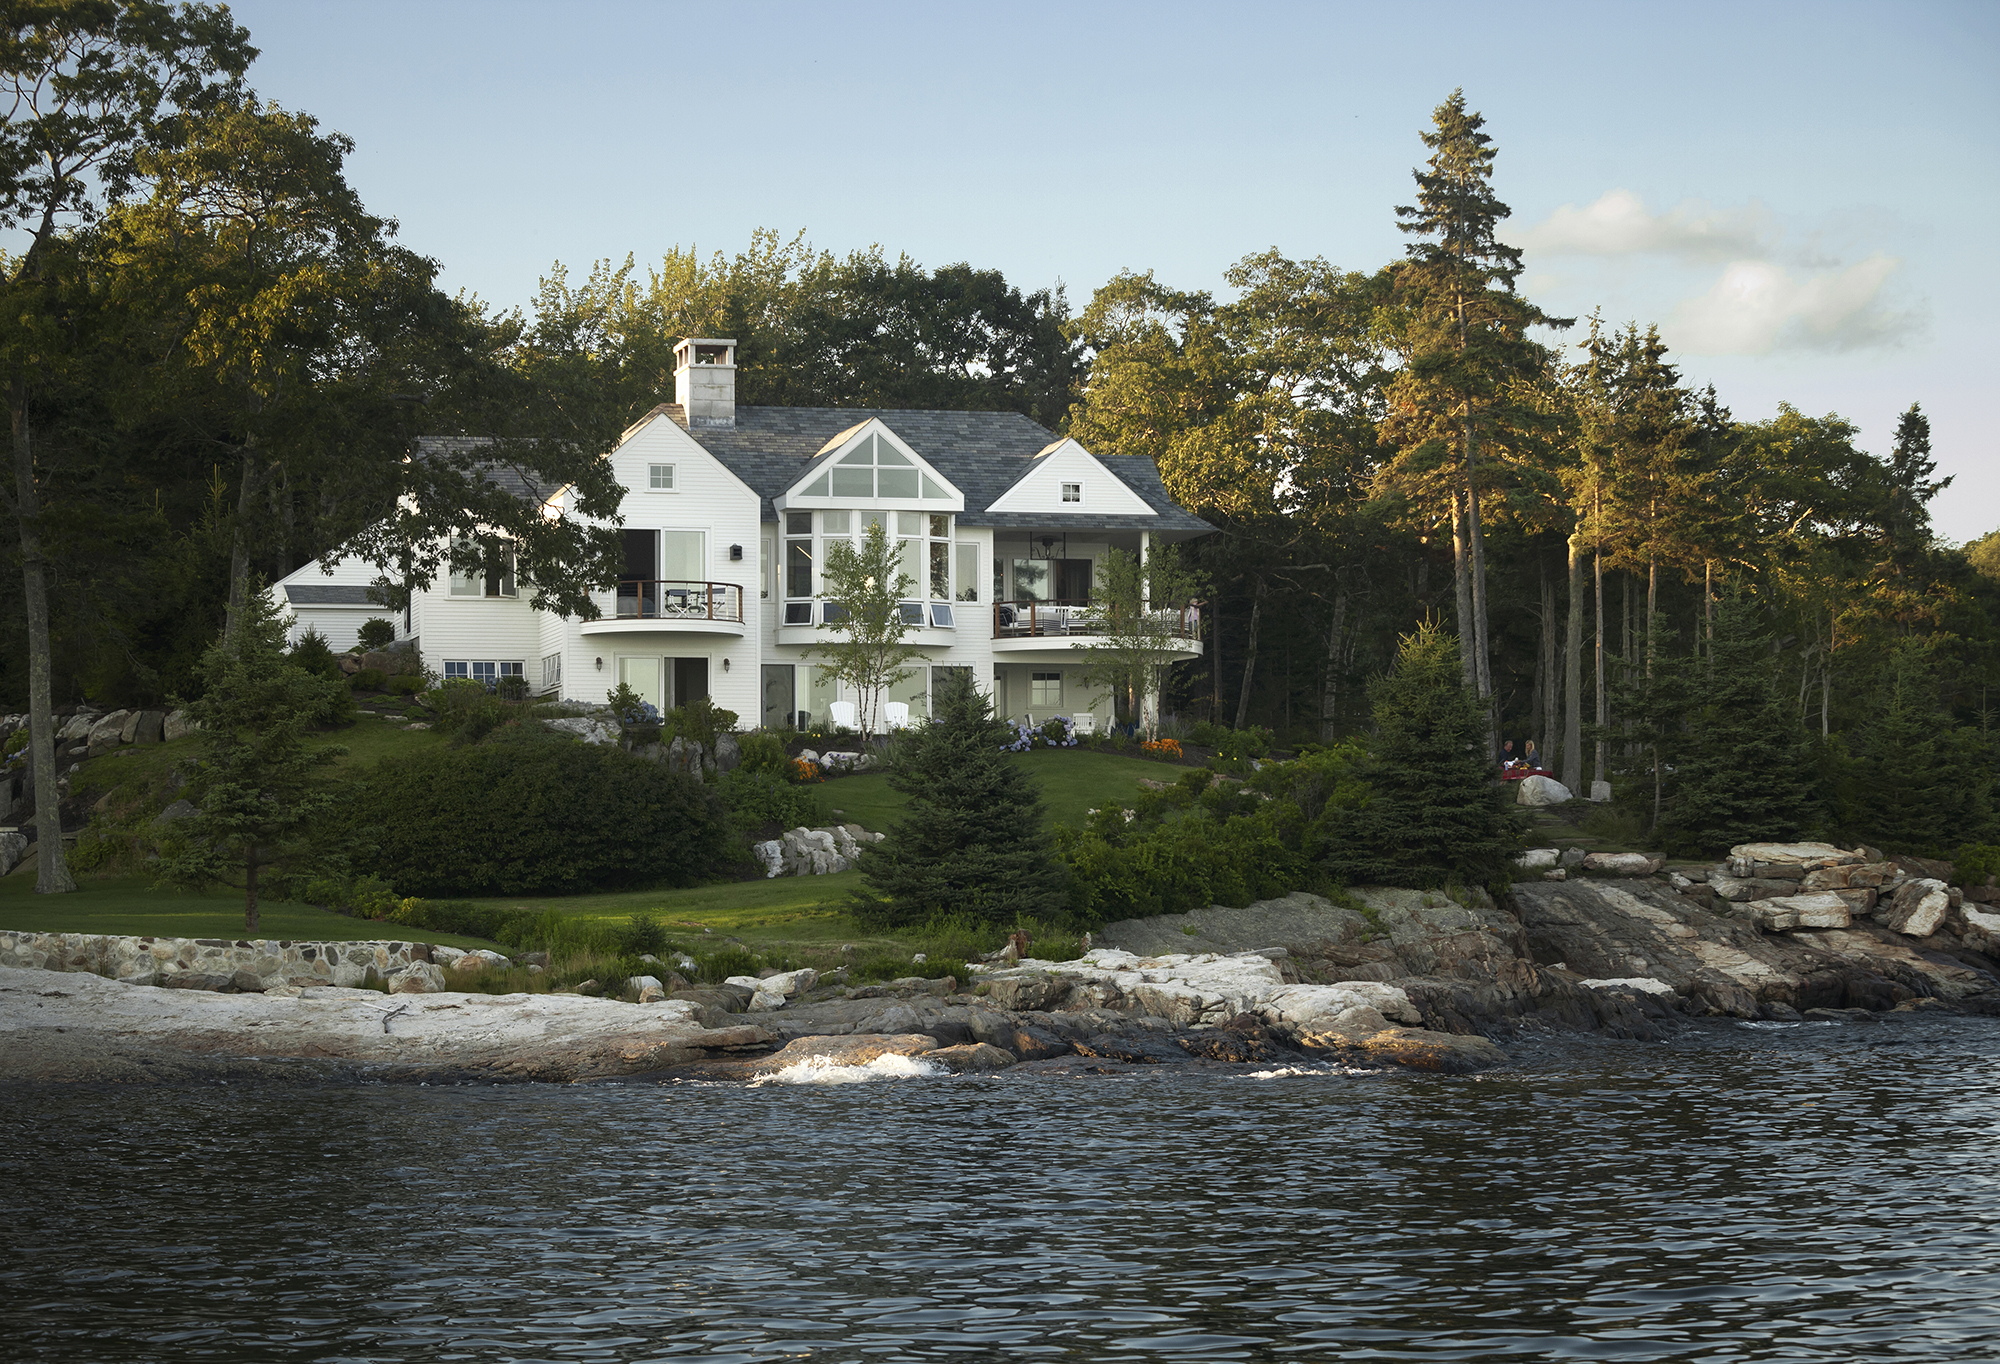 knickerbocker-group-project-ocean-cliff-maine-estate-family-home-bunkhouse-coastal-living